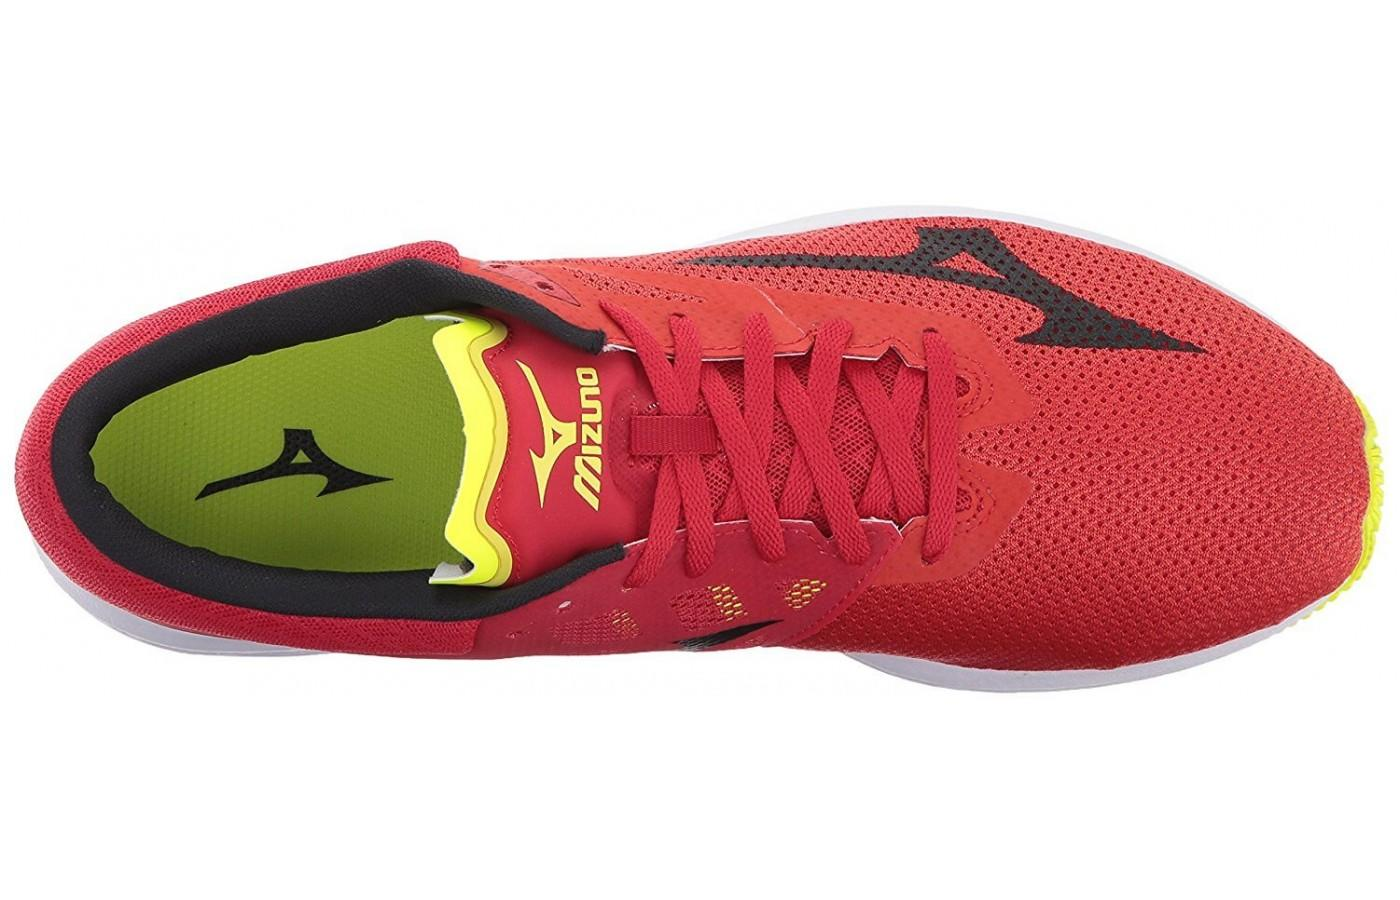 Mizuno Wave Sonic features Airmesh material in its upper